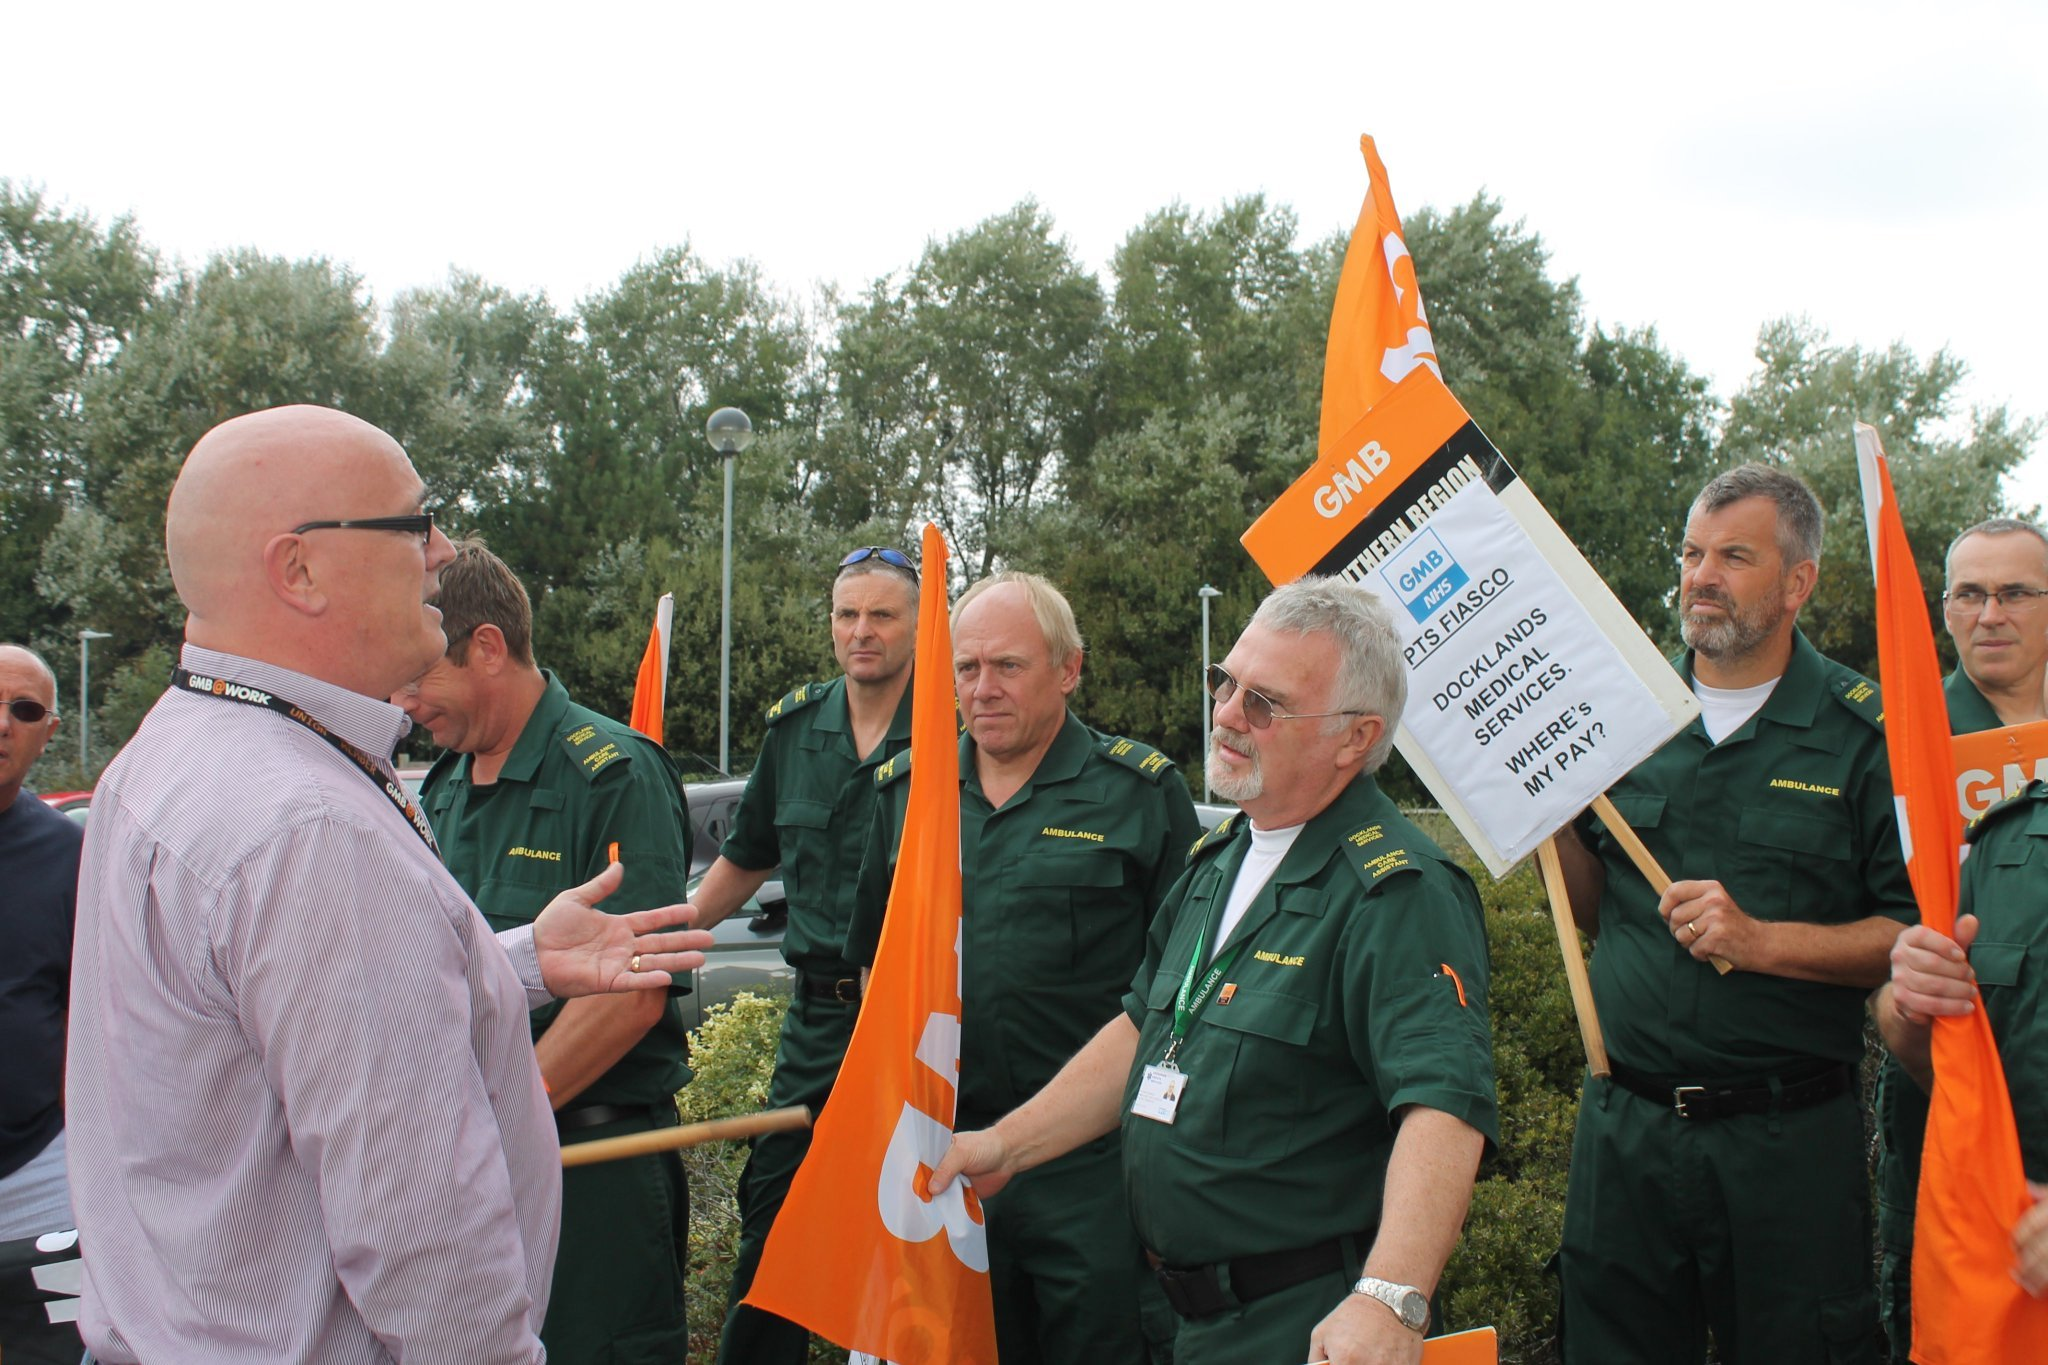 Ambulance staff marching in protest, with a GMB organiser